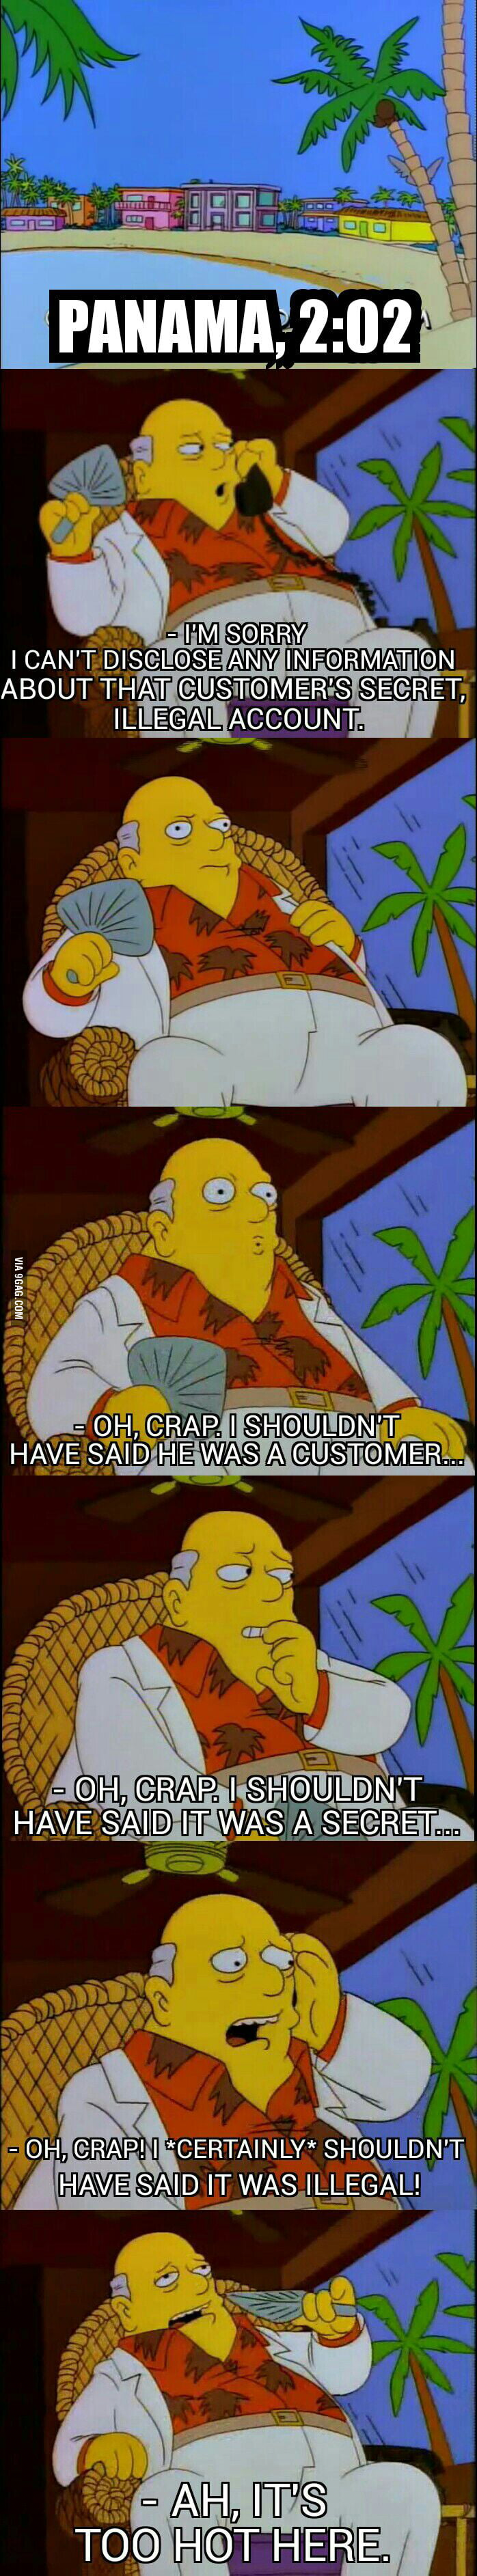 Panama papers. Simpsons one step ahead